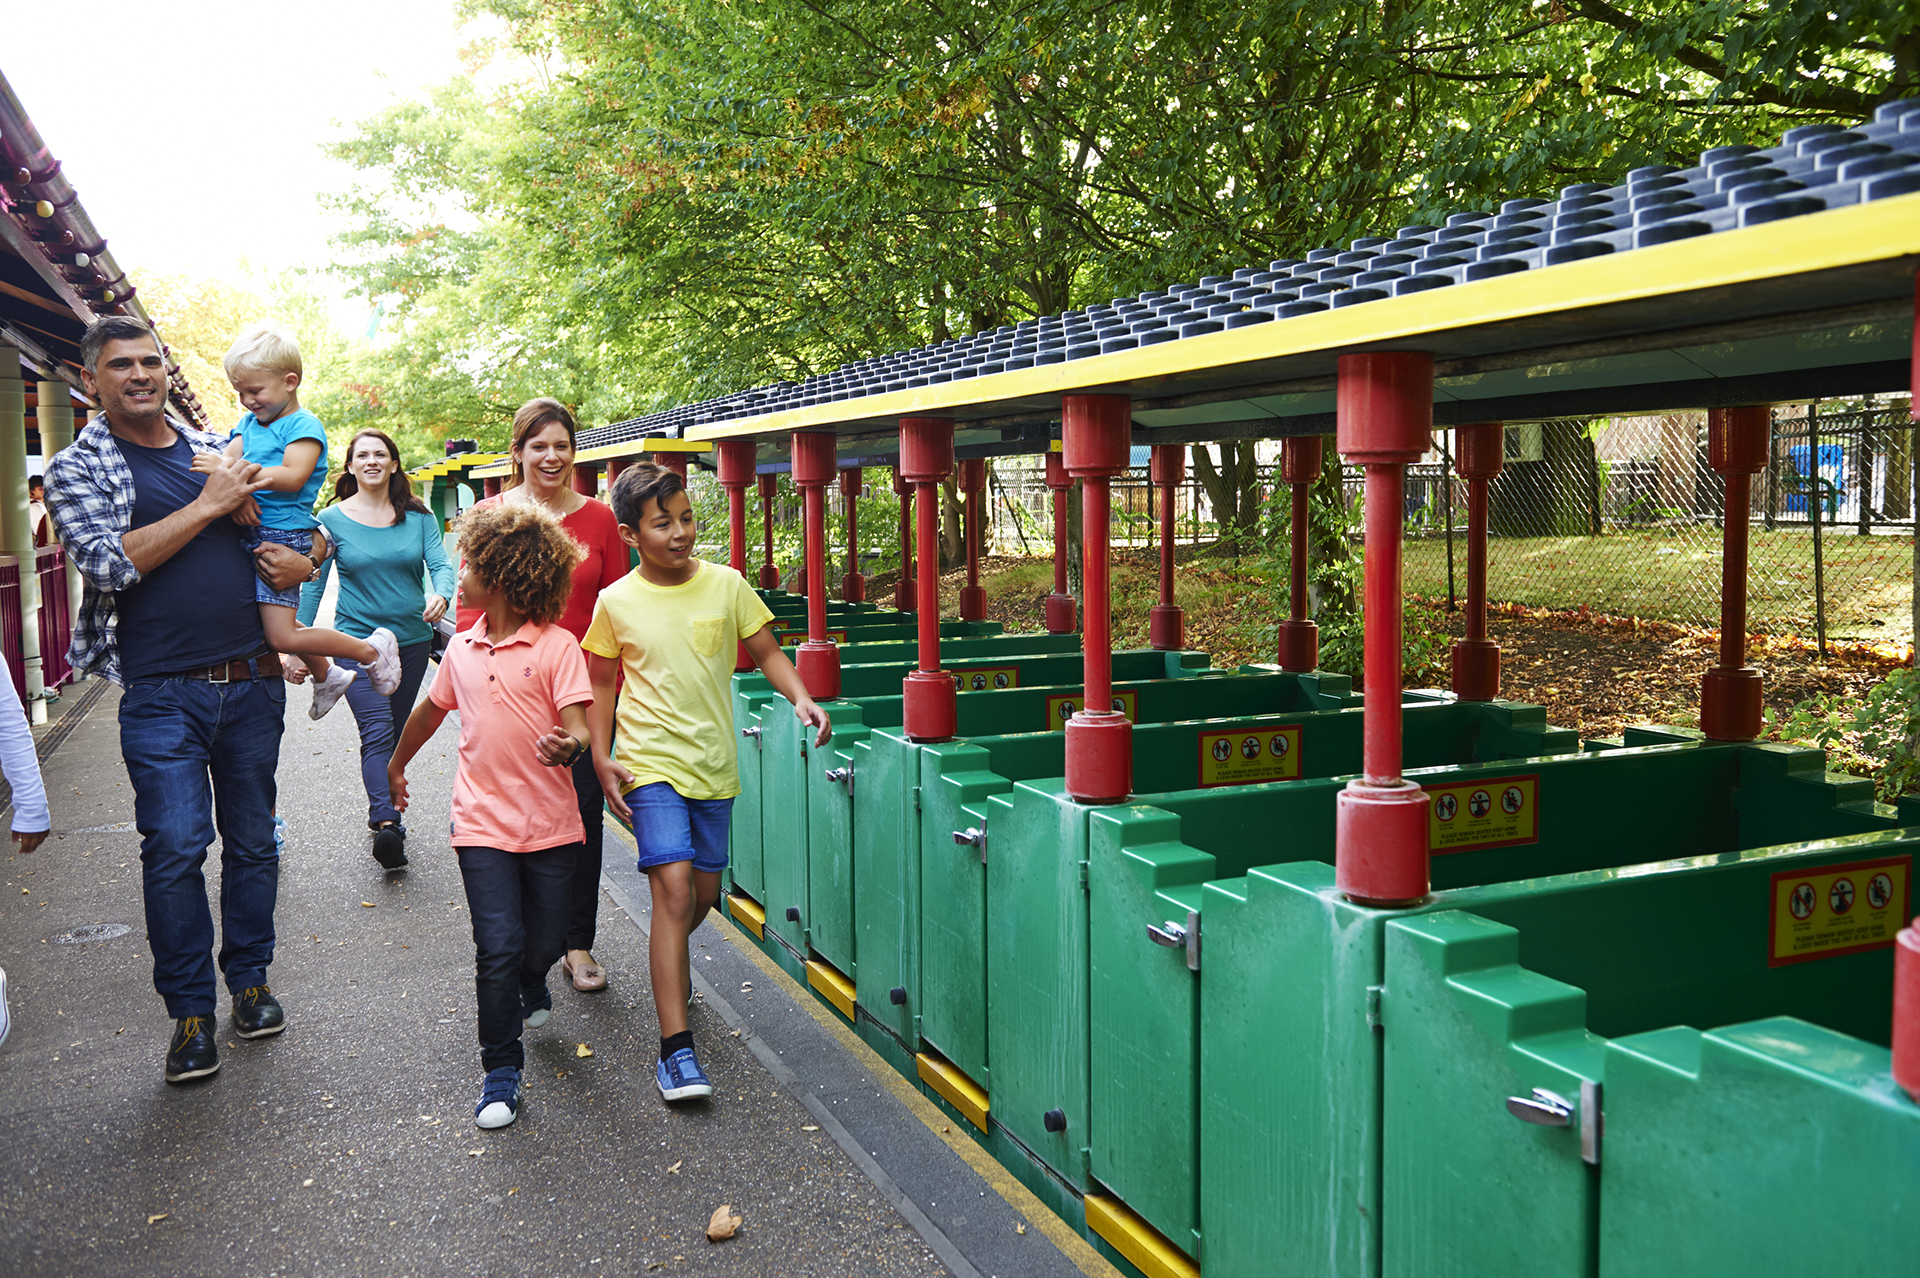 The LEGOLAND Express